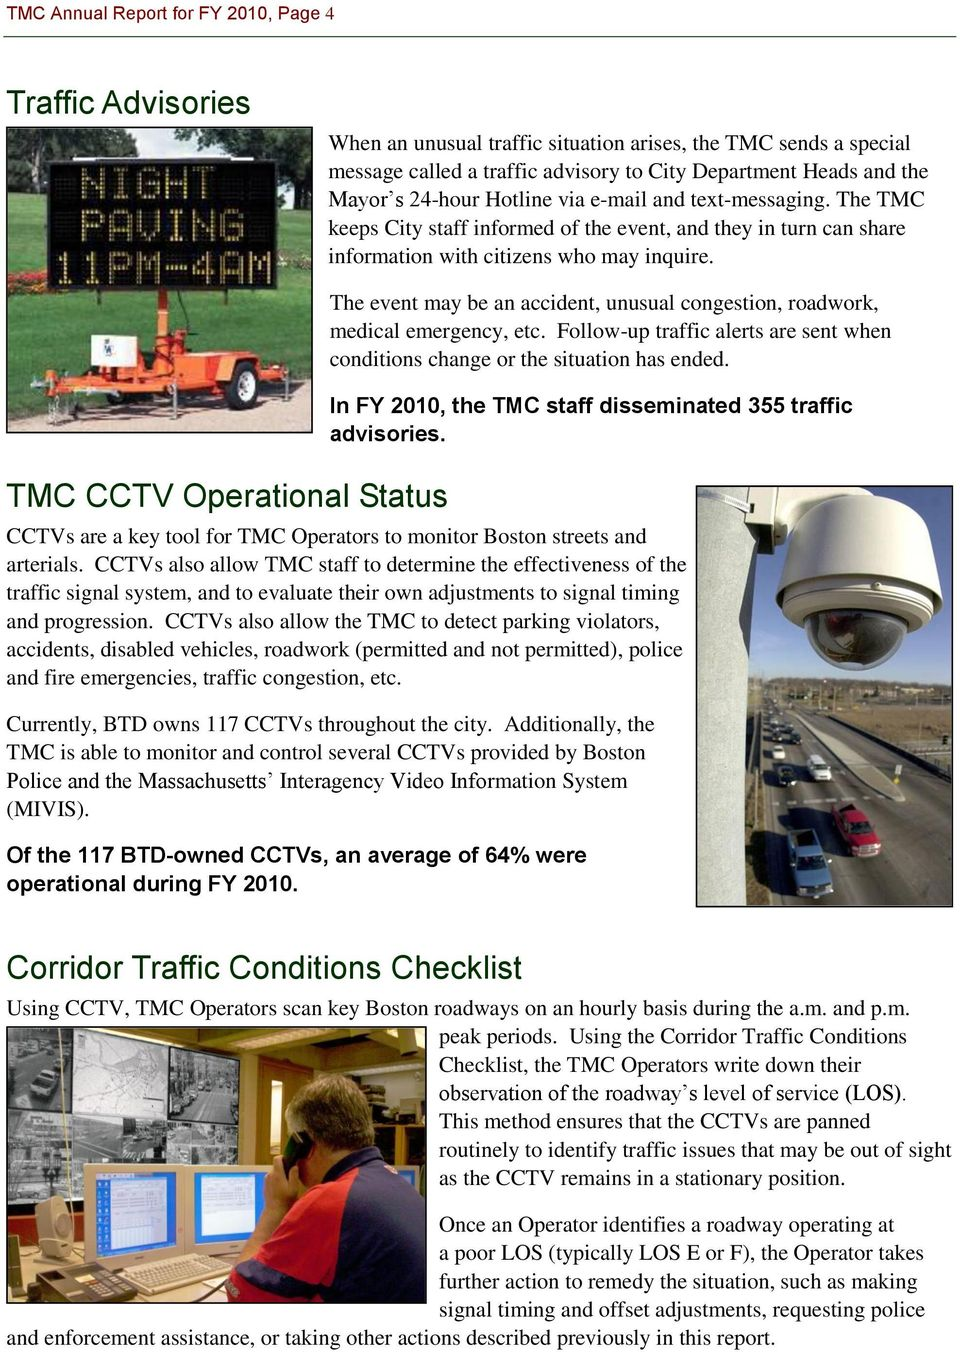 TMC CCTV Operational Status The event may be an accident, unusual congestion, roadwork, medical emergency, etc. Follow-up traffic alerts are sent when conditions change or the situation has ended.